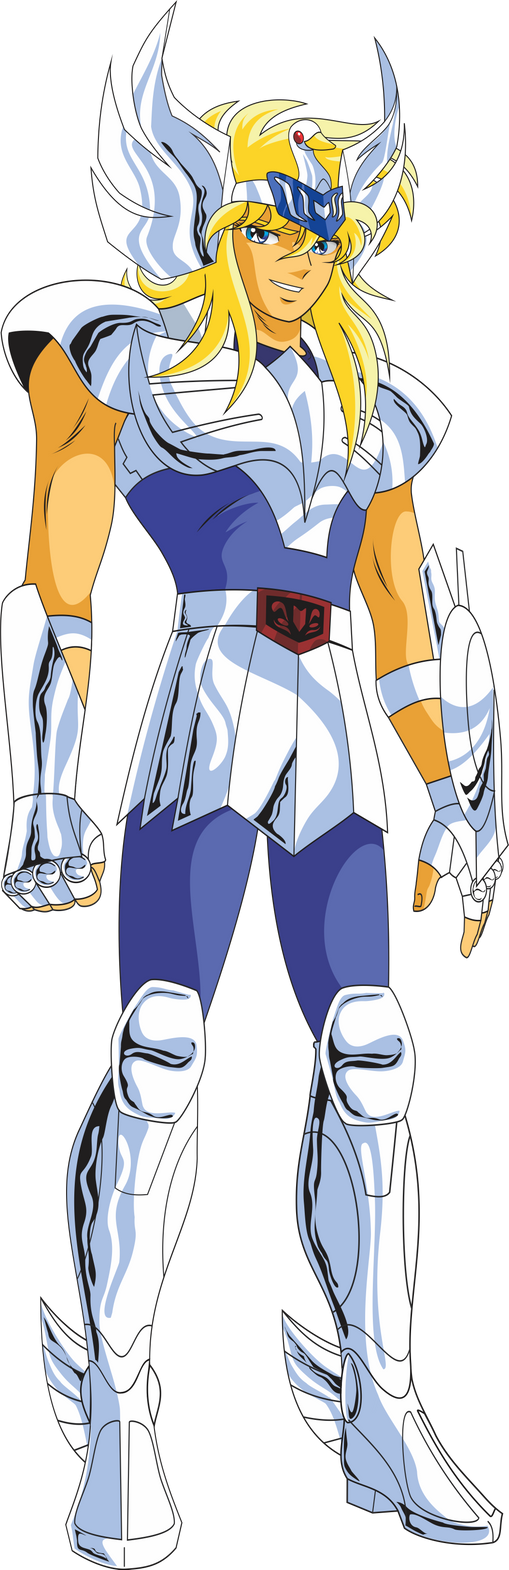 3__saint_seiya___hyoga_by_mikebriceno-d3he276.png